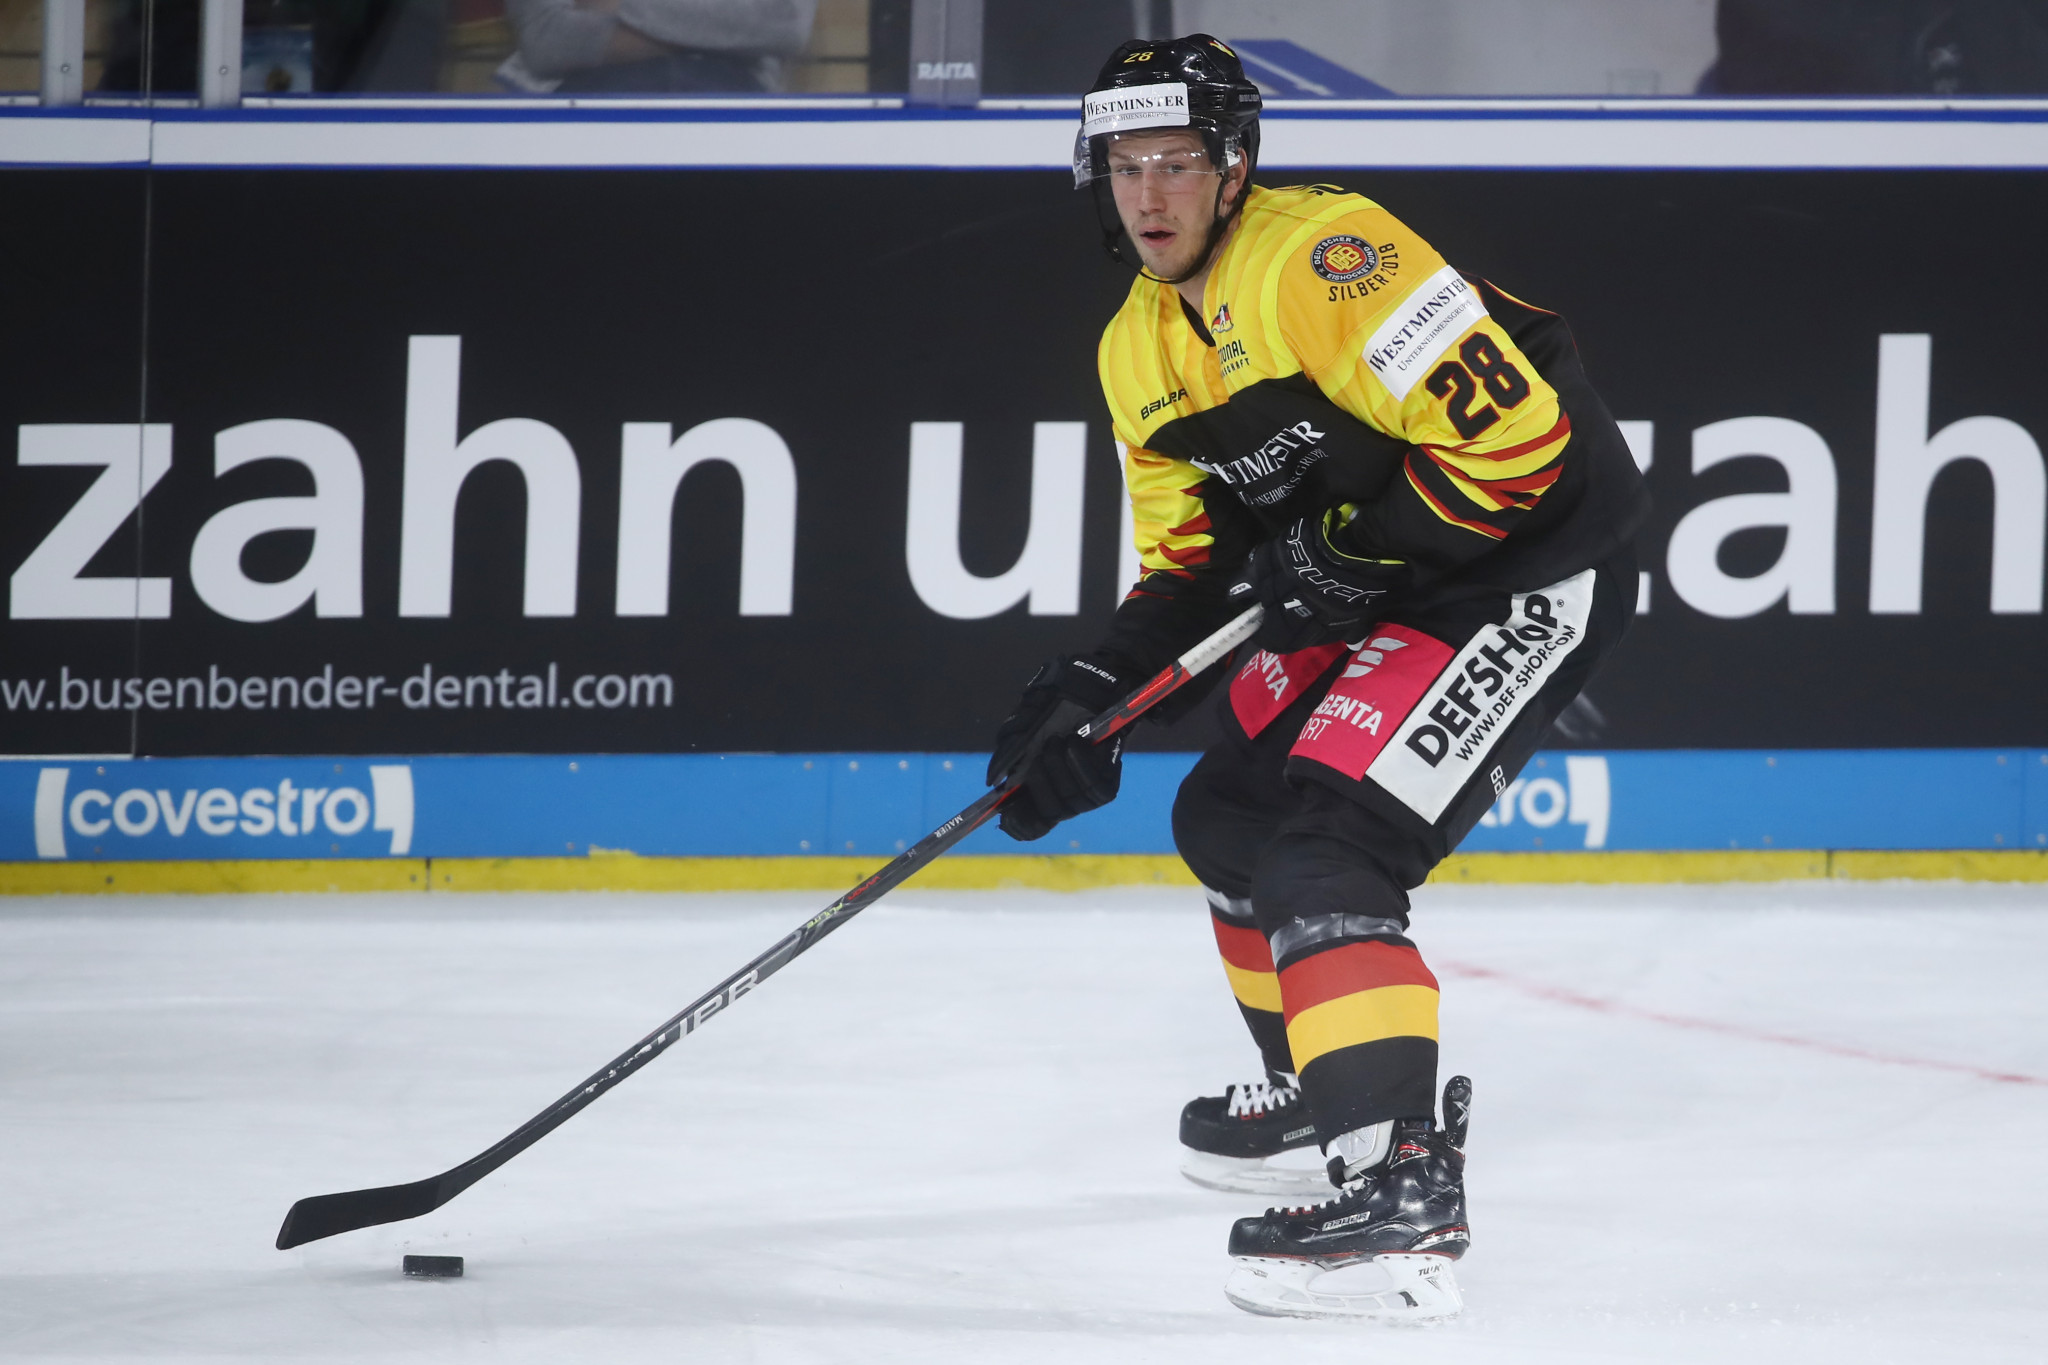 German ice hockey players carry out mini-internships at national federation